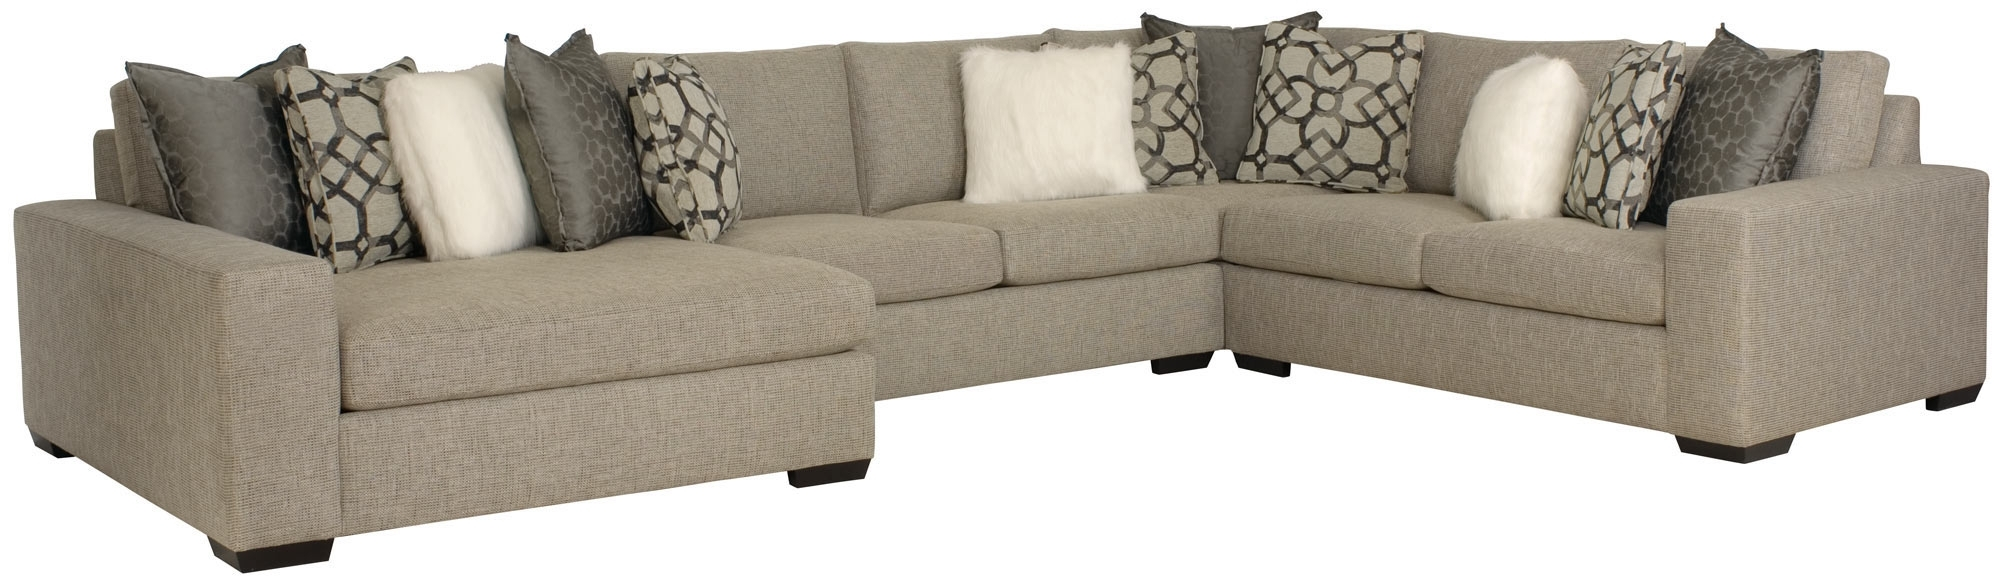 Sectional | Bernhardt for Orlando Sectional Sofas (Image 10 of 10)